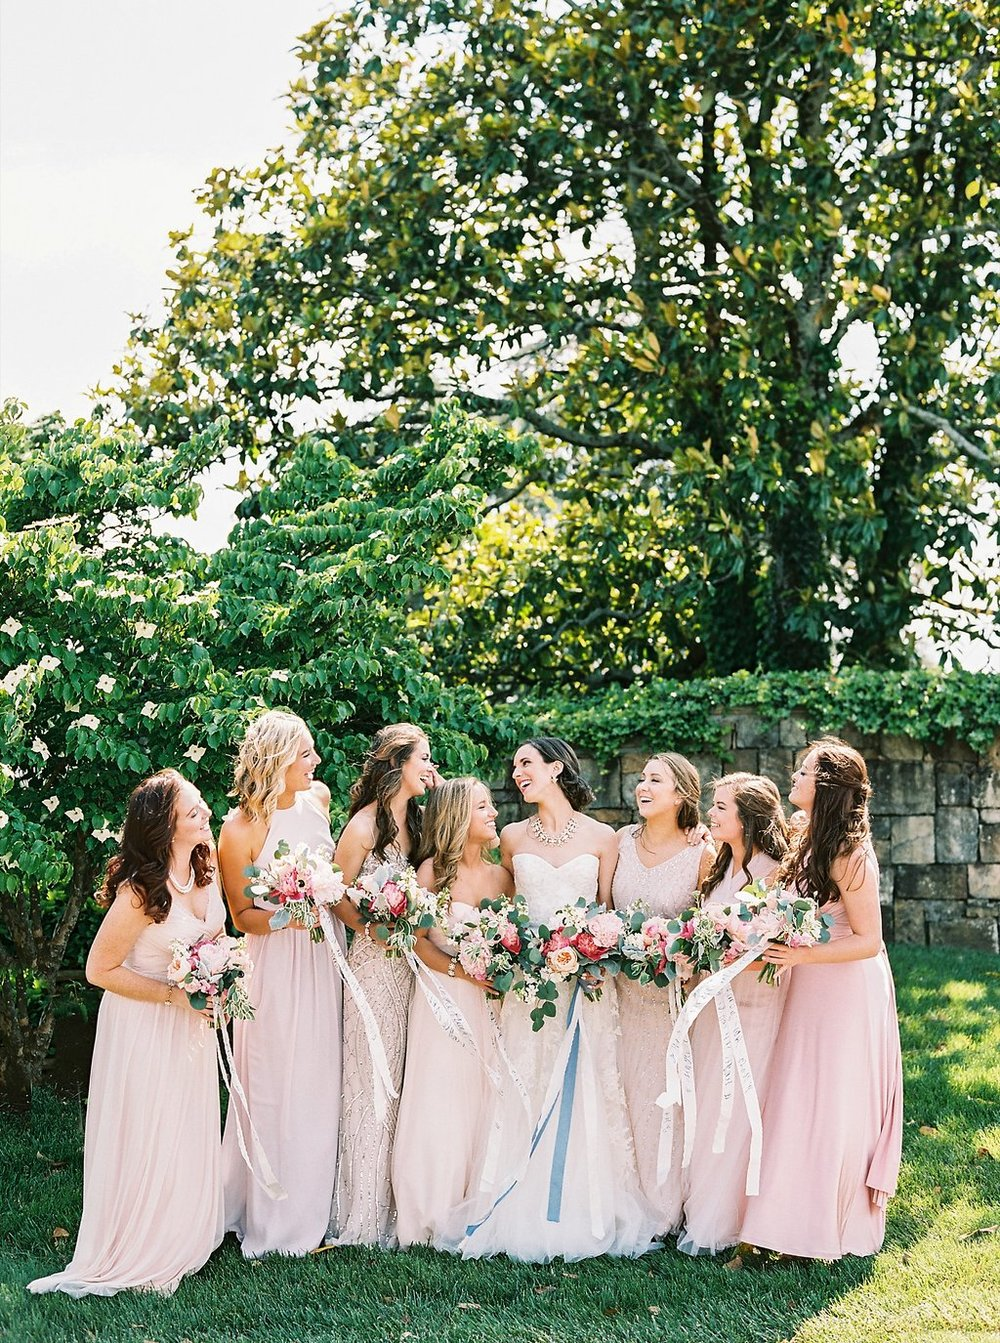 Blush Mix and Match Bridesmaids Dresses from BHLDN | Blush and Navy Wedding with Fuchsia, French Blue and Gold Accents | Simply Jessica Marie's Southern Wedding at Gettysvue Golf Course and Country Club in Knoxville Tennessee | Photo by Perry Vaile Photography